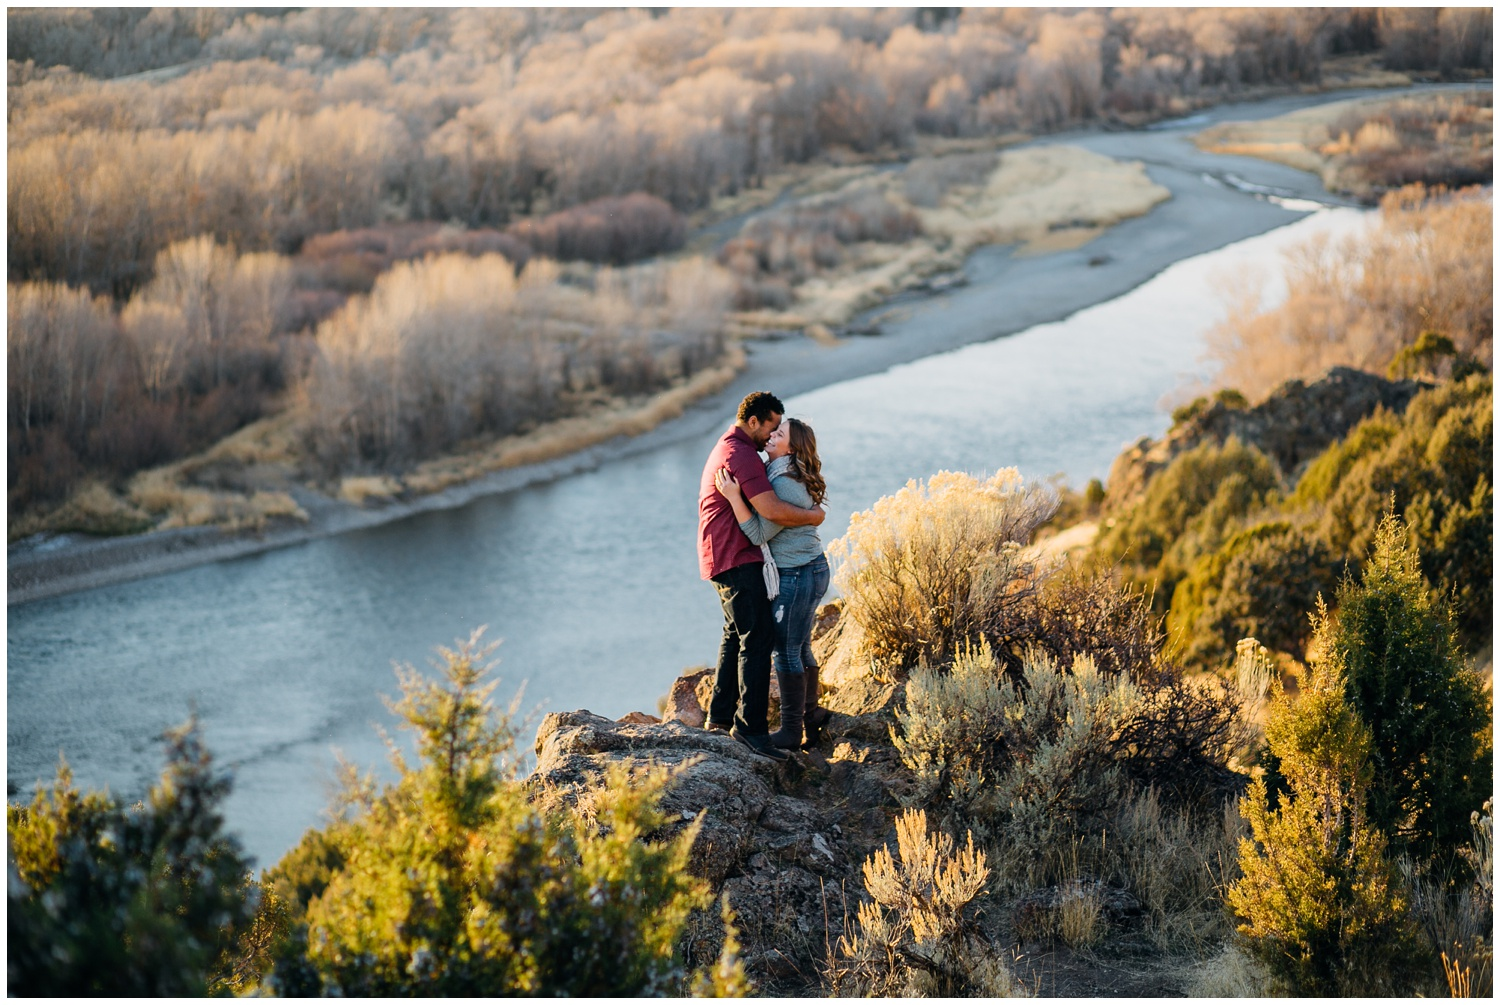 rexburg-engagements-idaho-wedding-photographer-mountains-adventure-photographer_1772.jpg